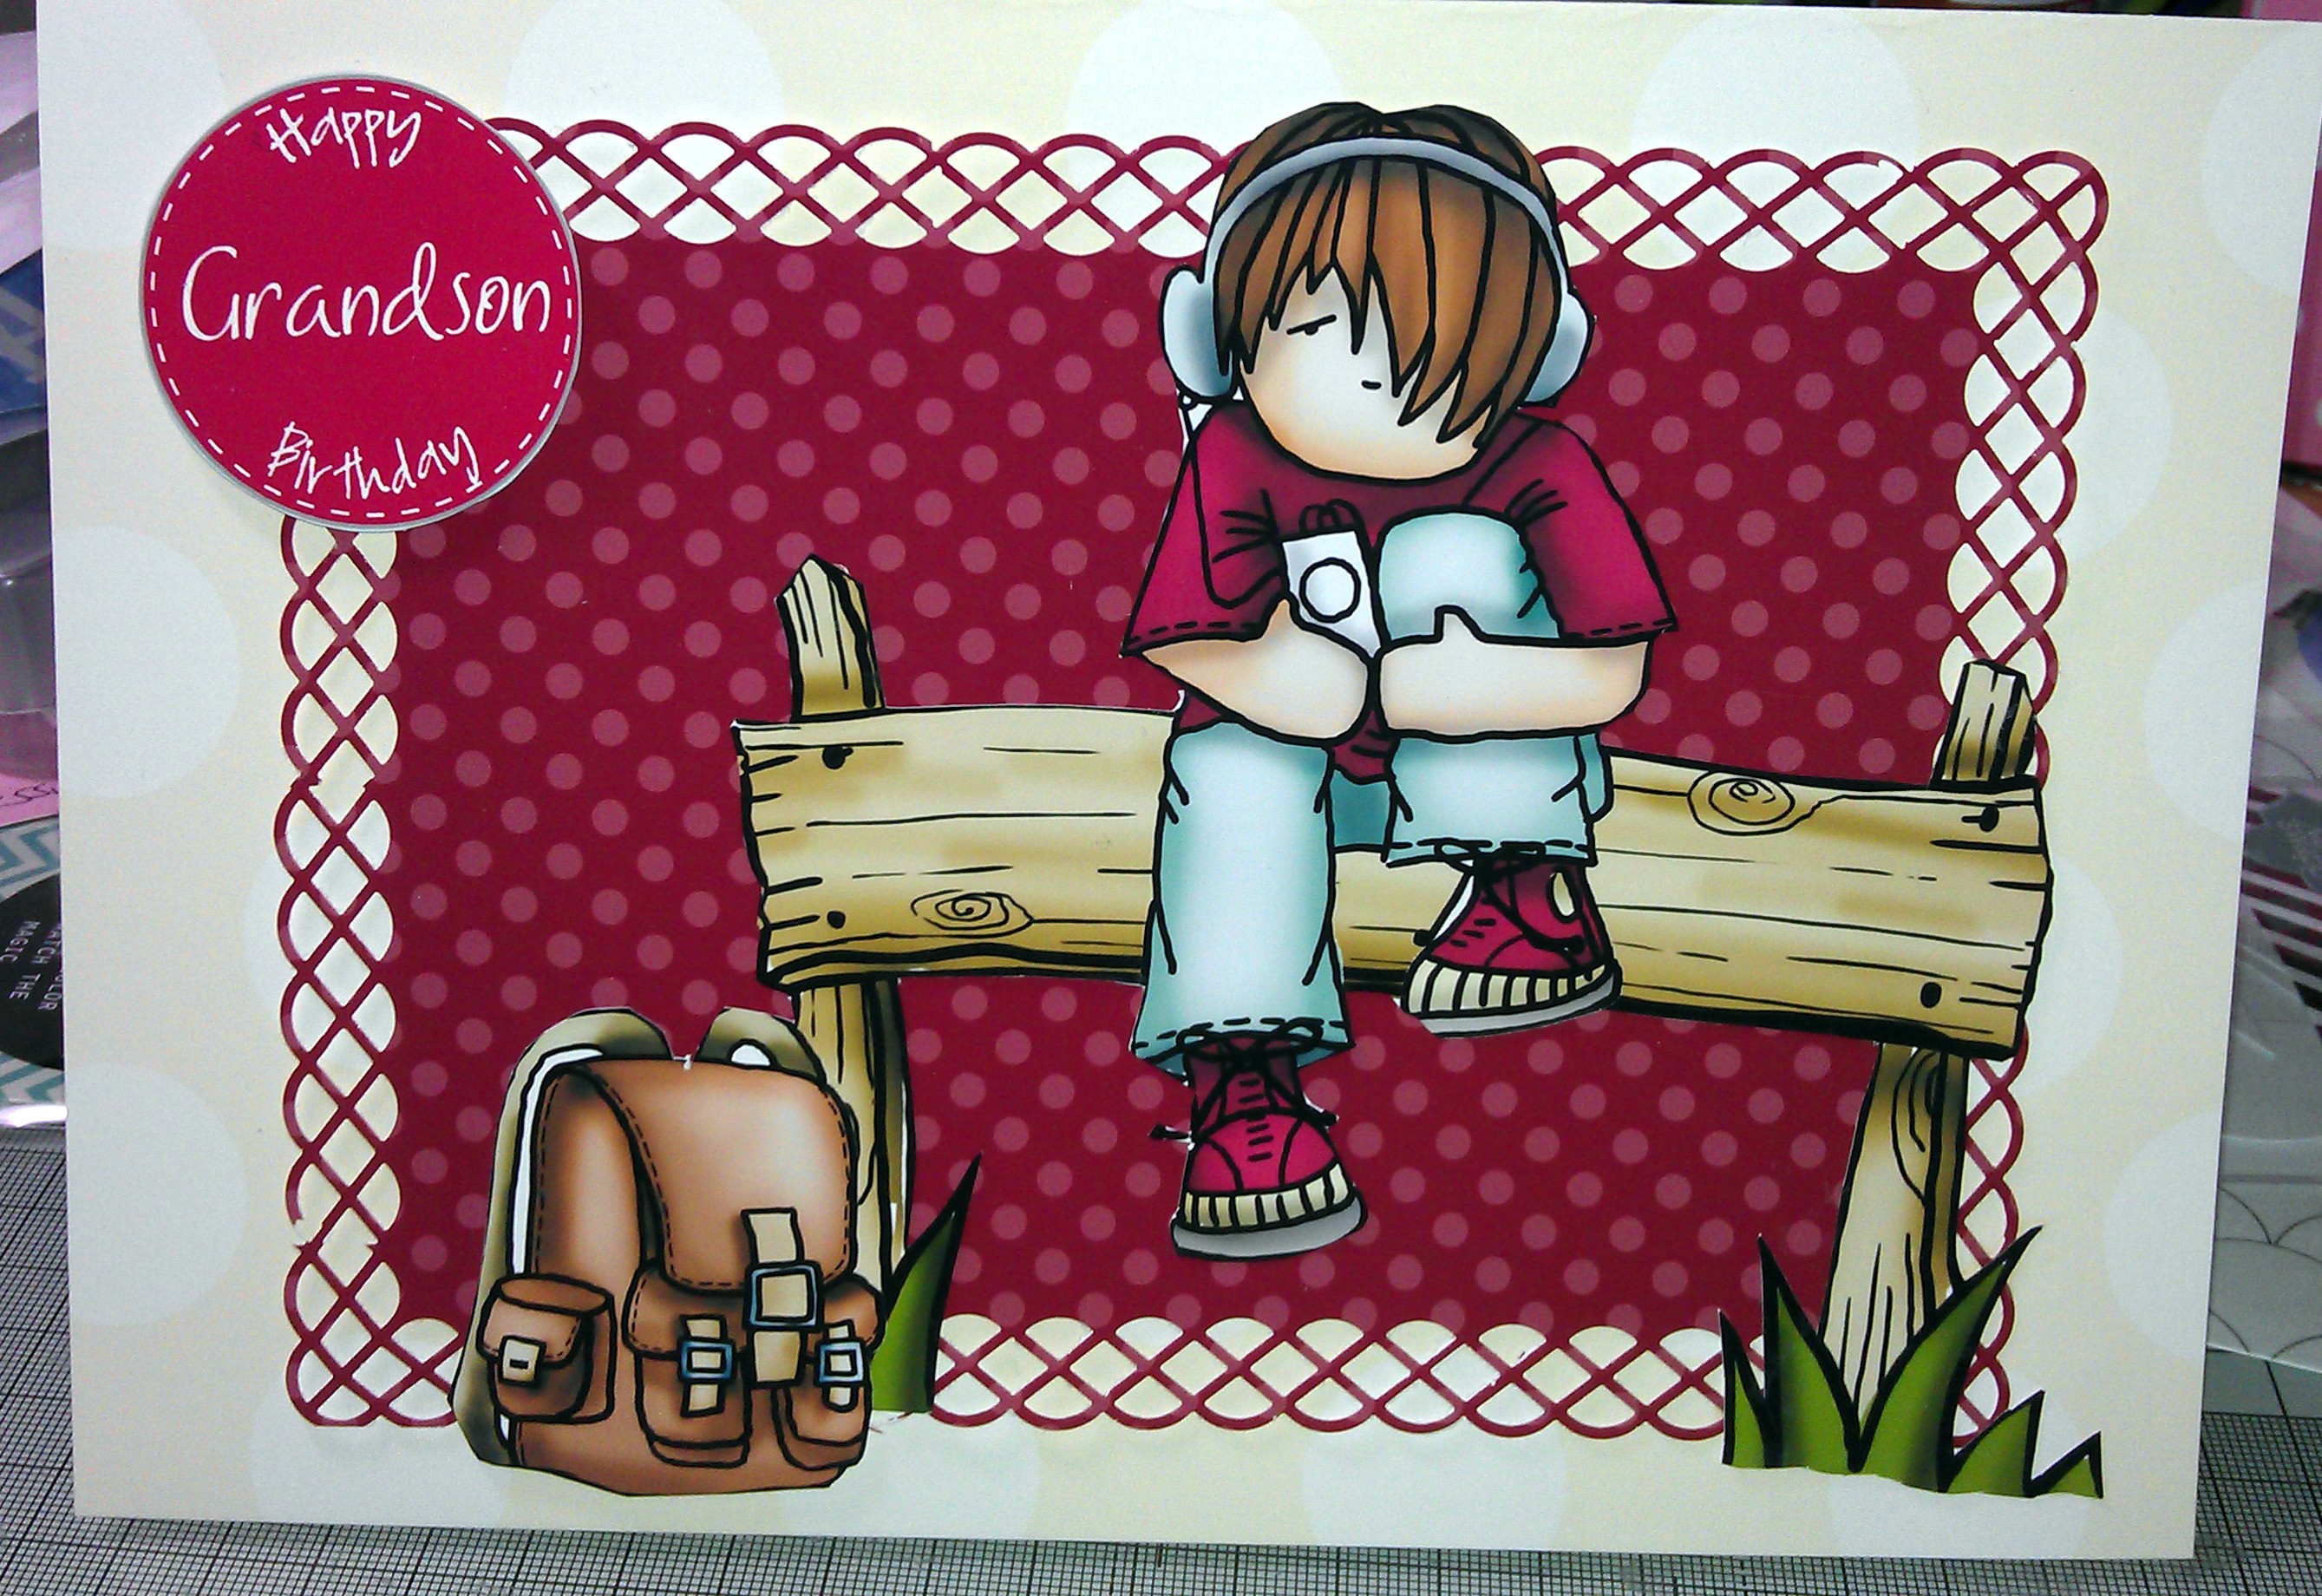 Grandsons 13th Birthday Card Kamilicrafts